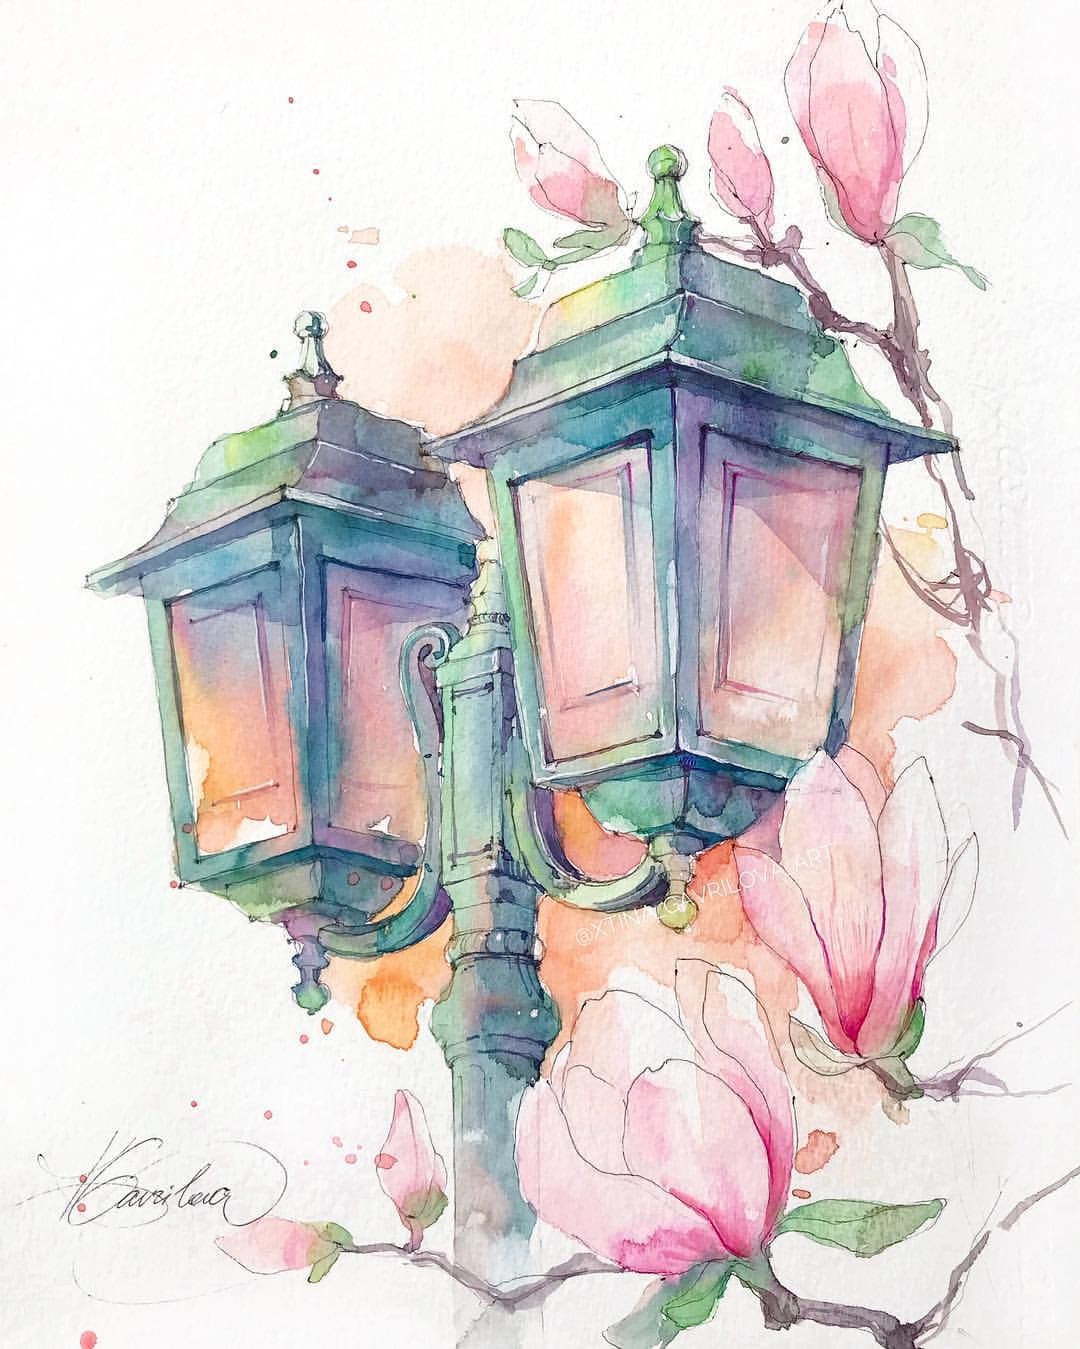 Watercolor Artist On Instagram The Magnolia Lantern Novyj